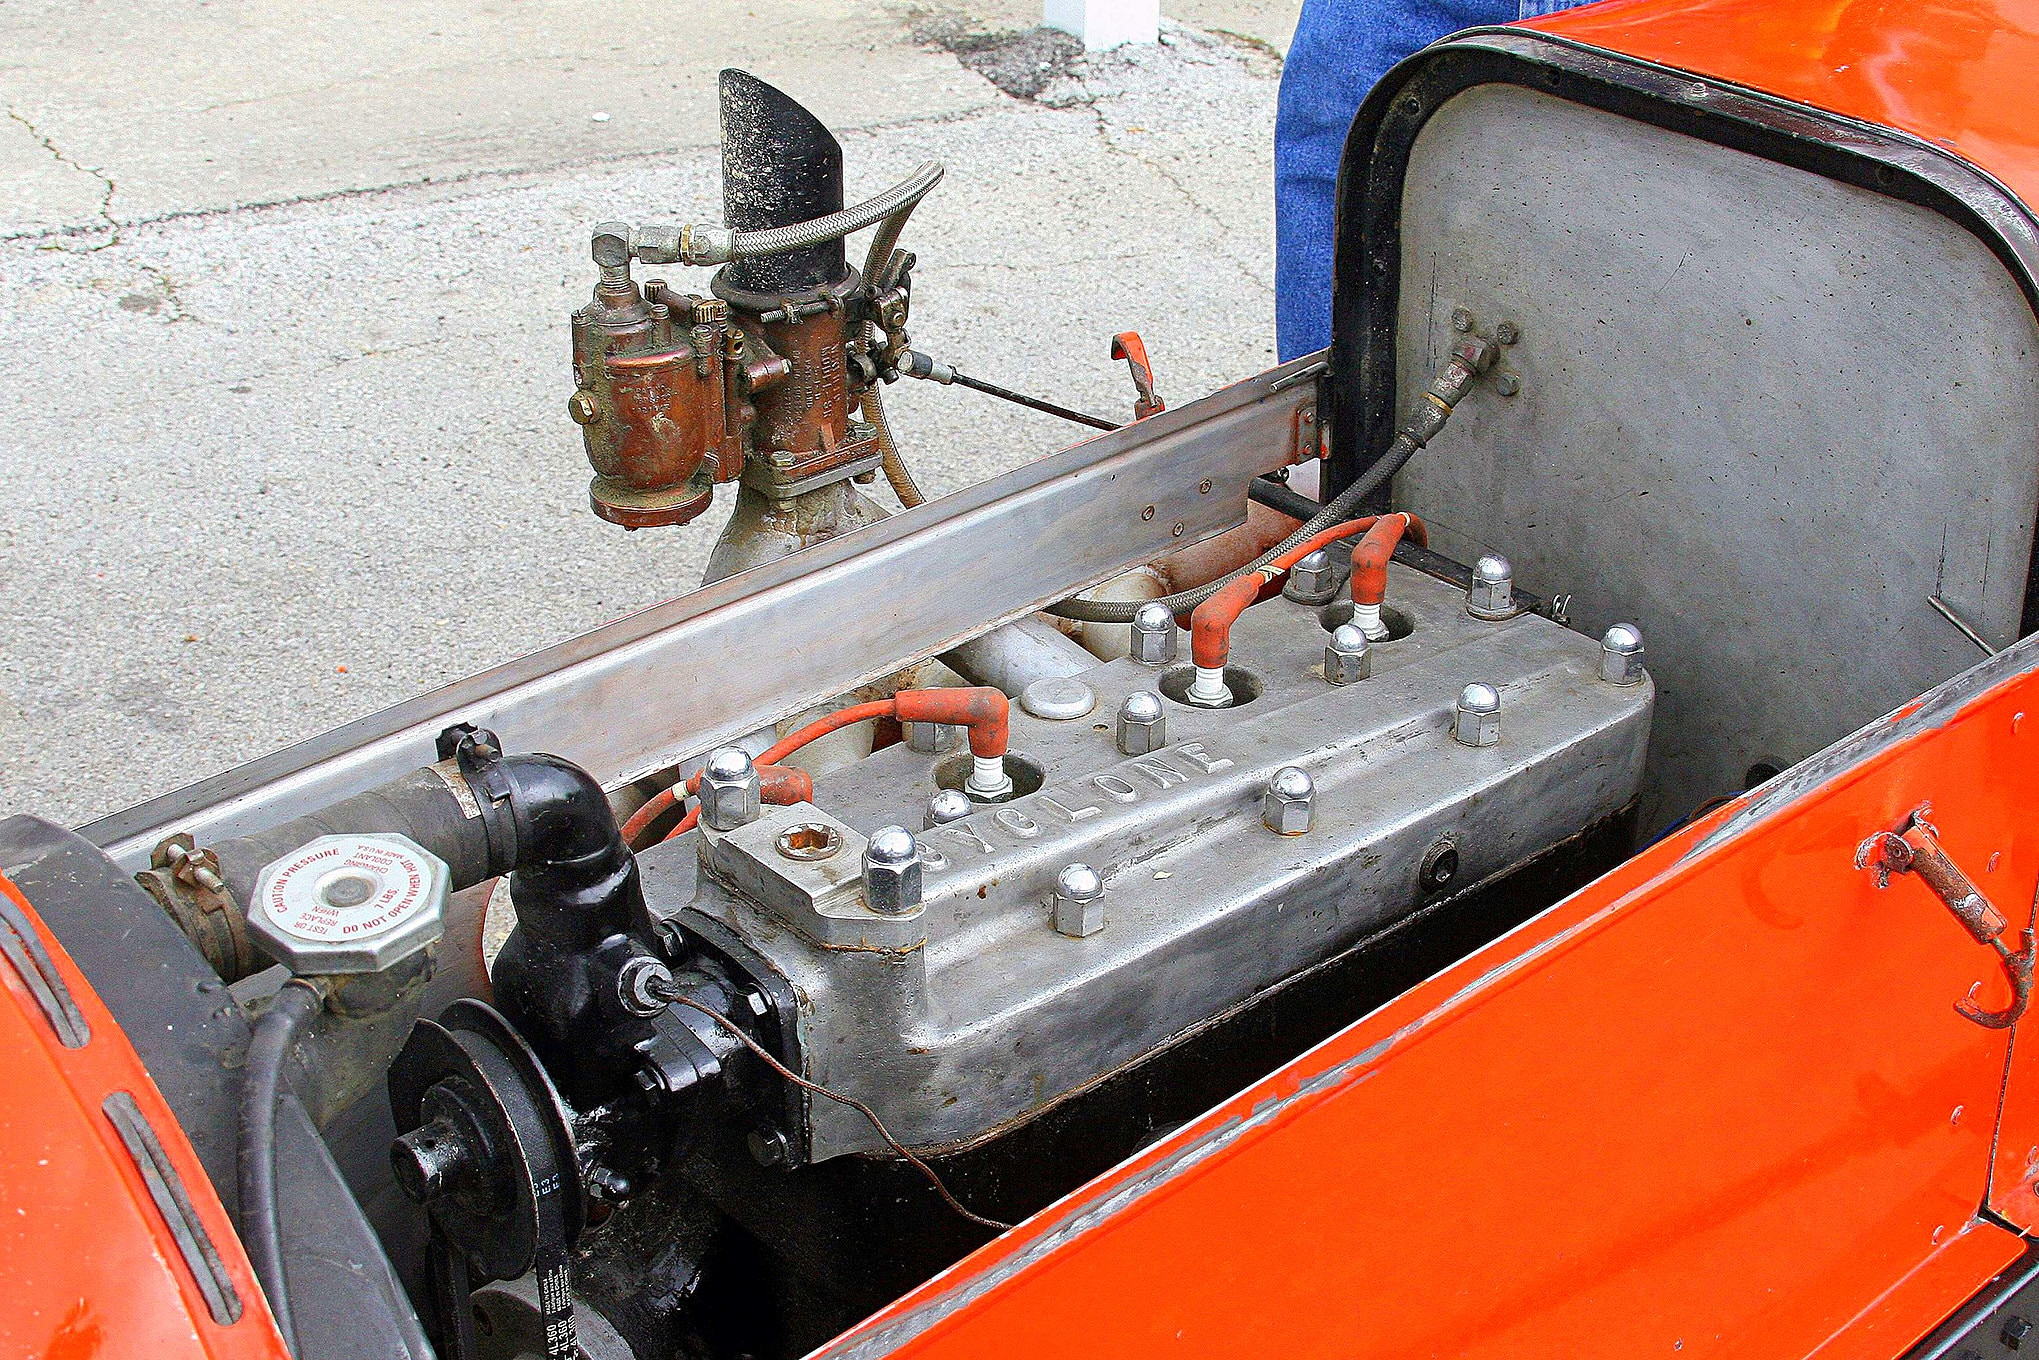 That was the Model B engine that so many used during the period. Besides the Cyclone head this car has, there were many other high-performance heads used.